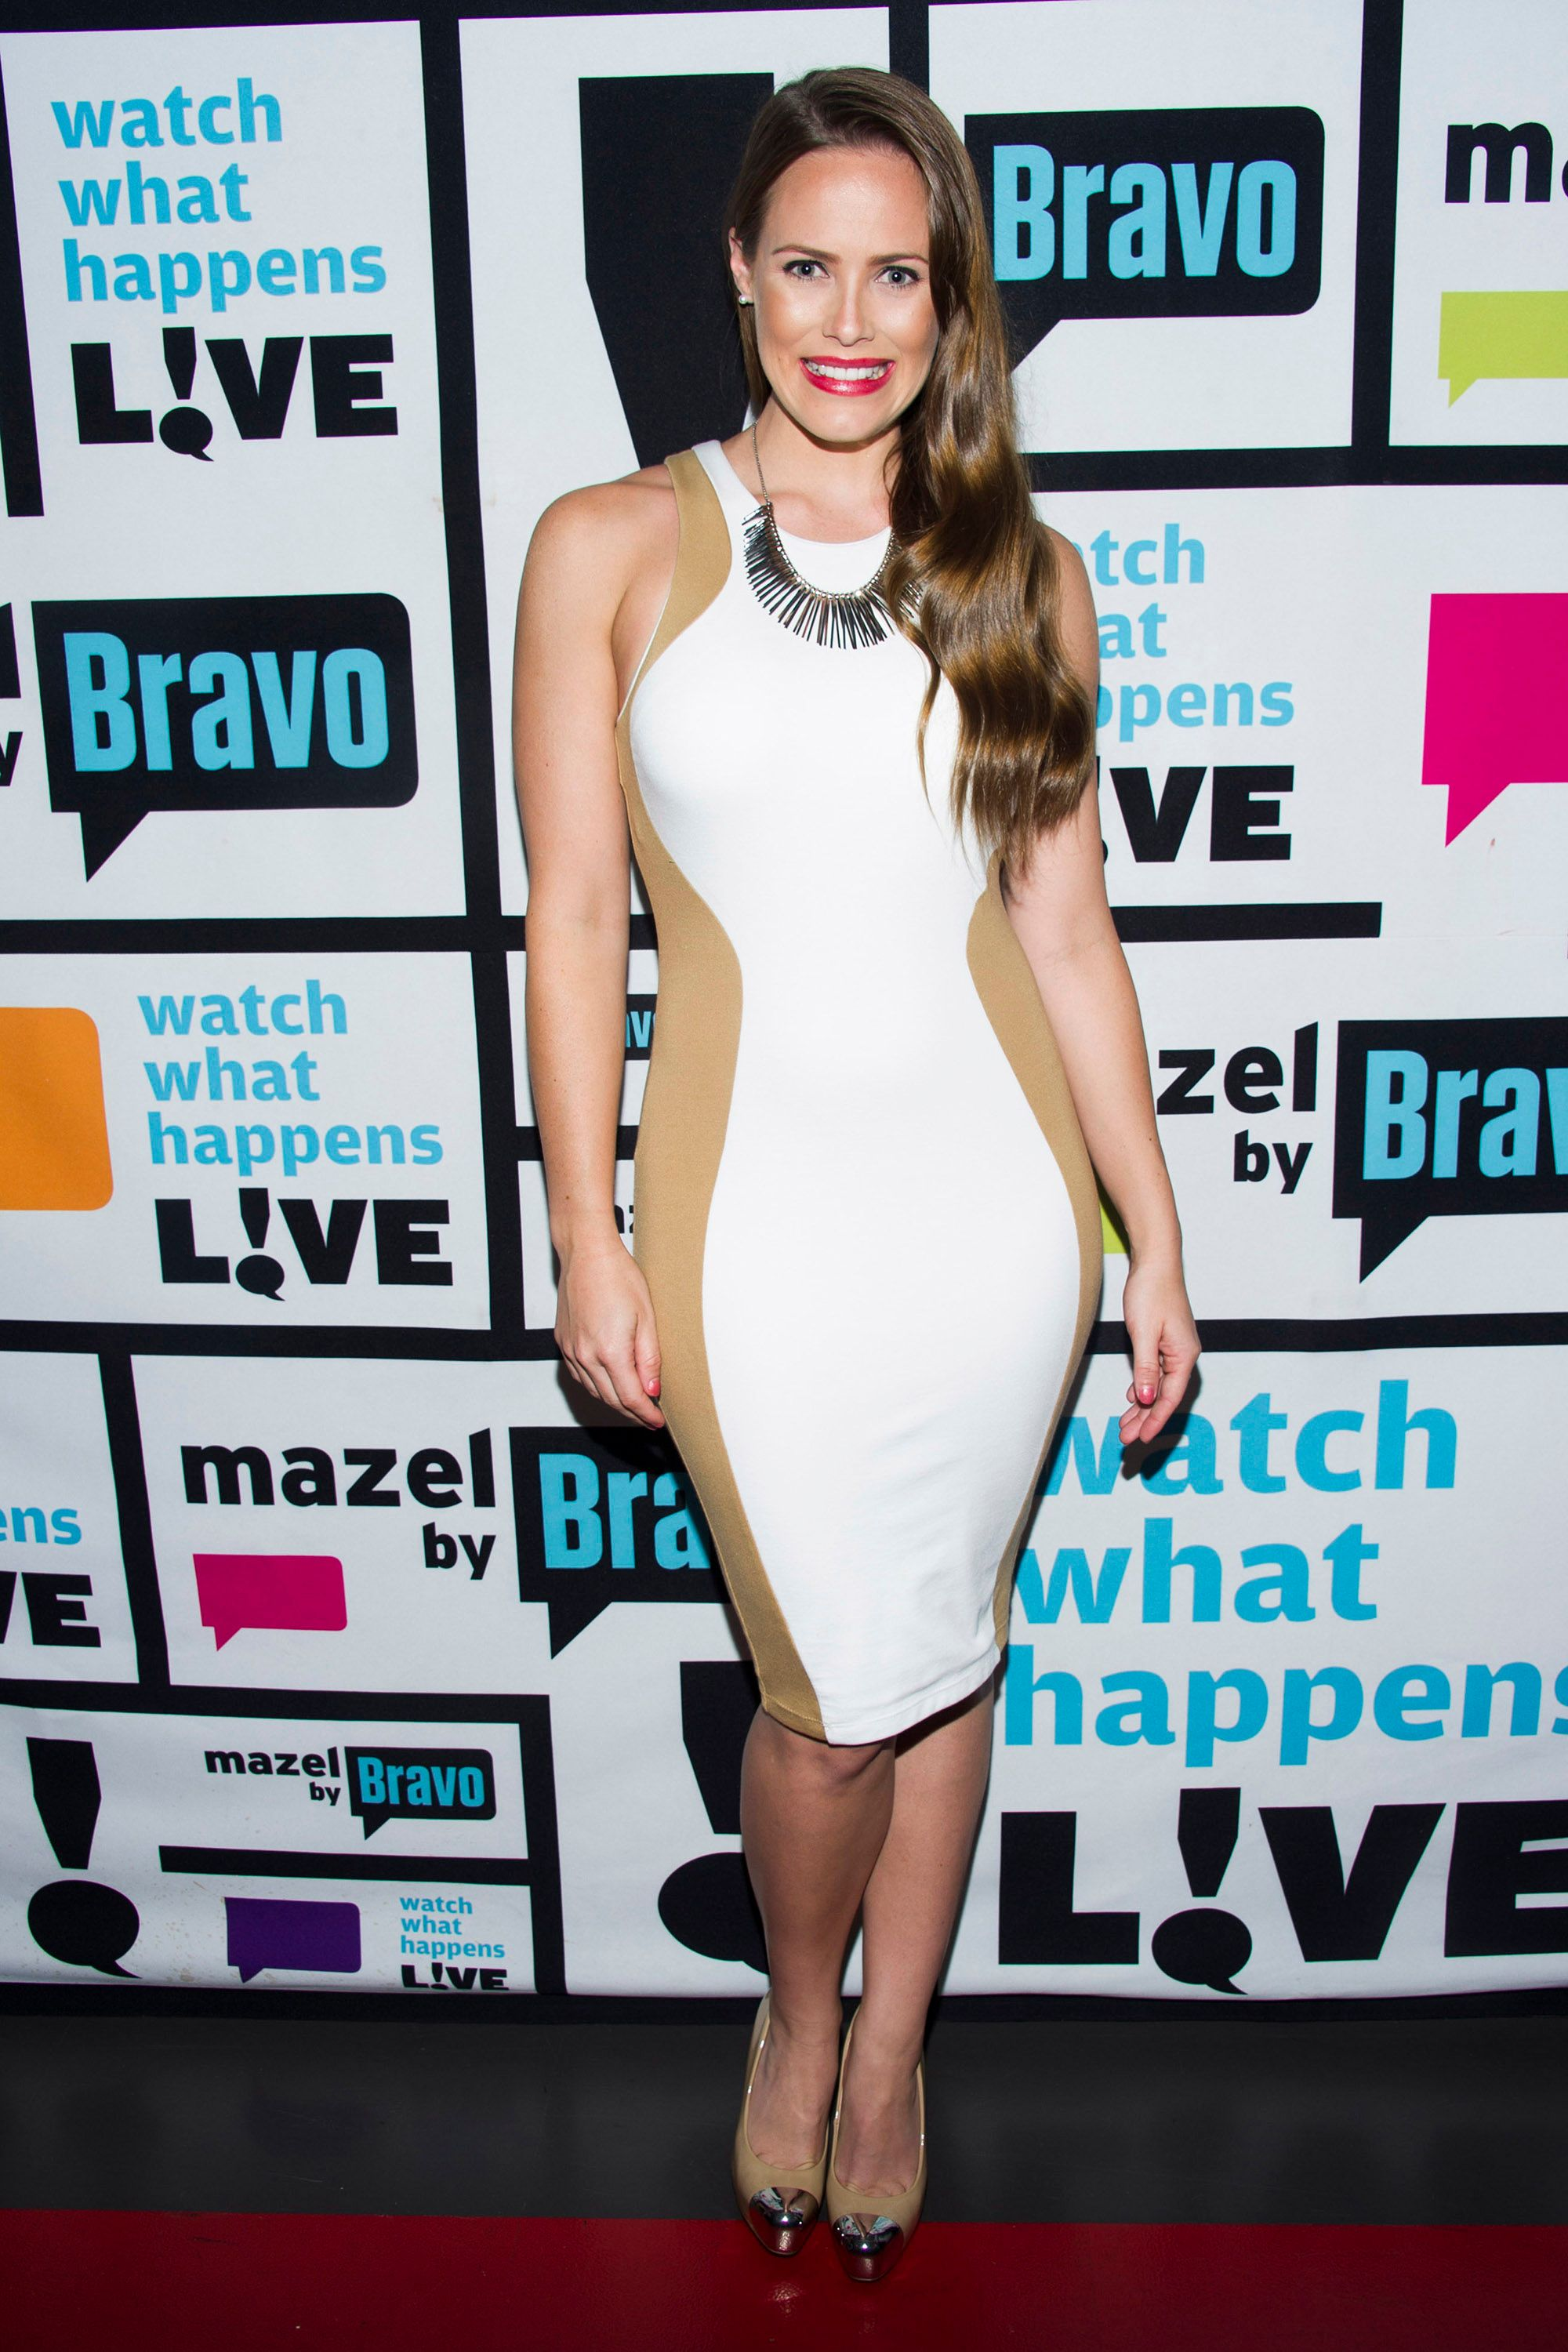 """Kara Keough on season 10 of """"Watch What Happens Live."""" 